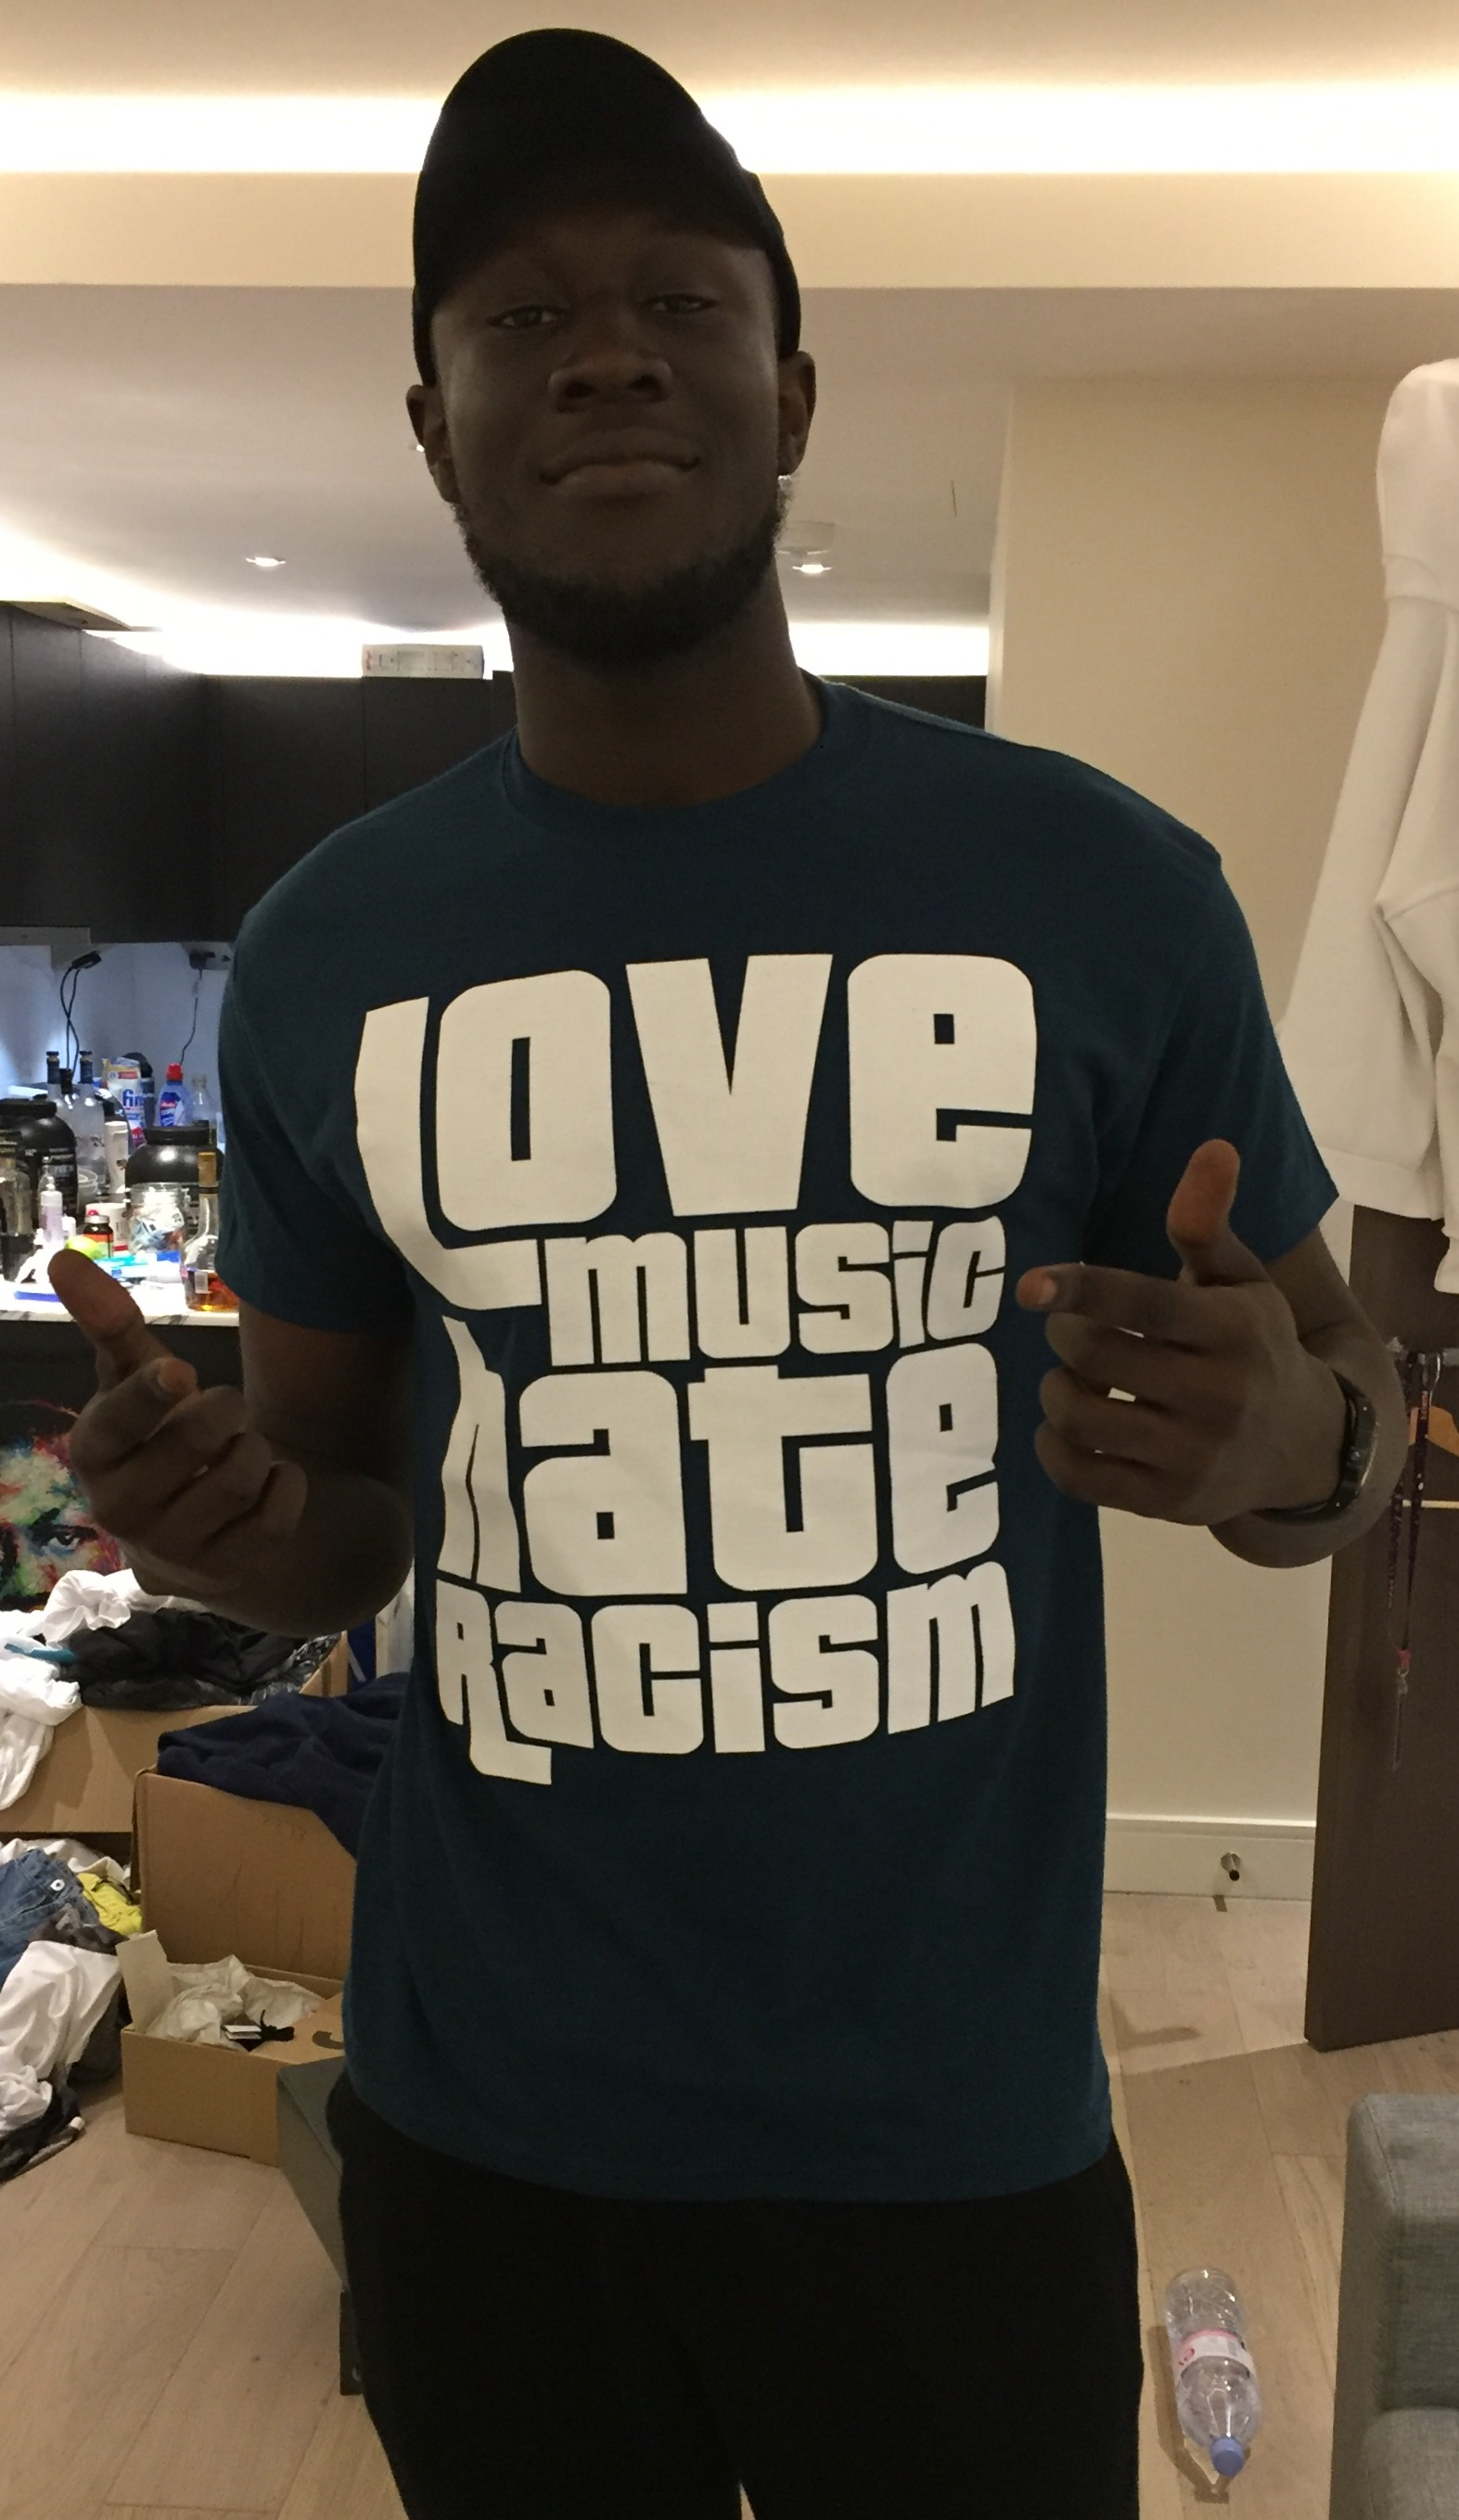 Stormzy - Love Music Hate Racism